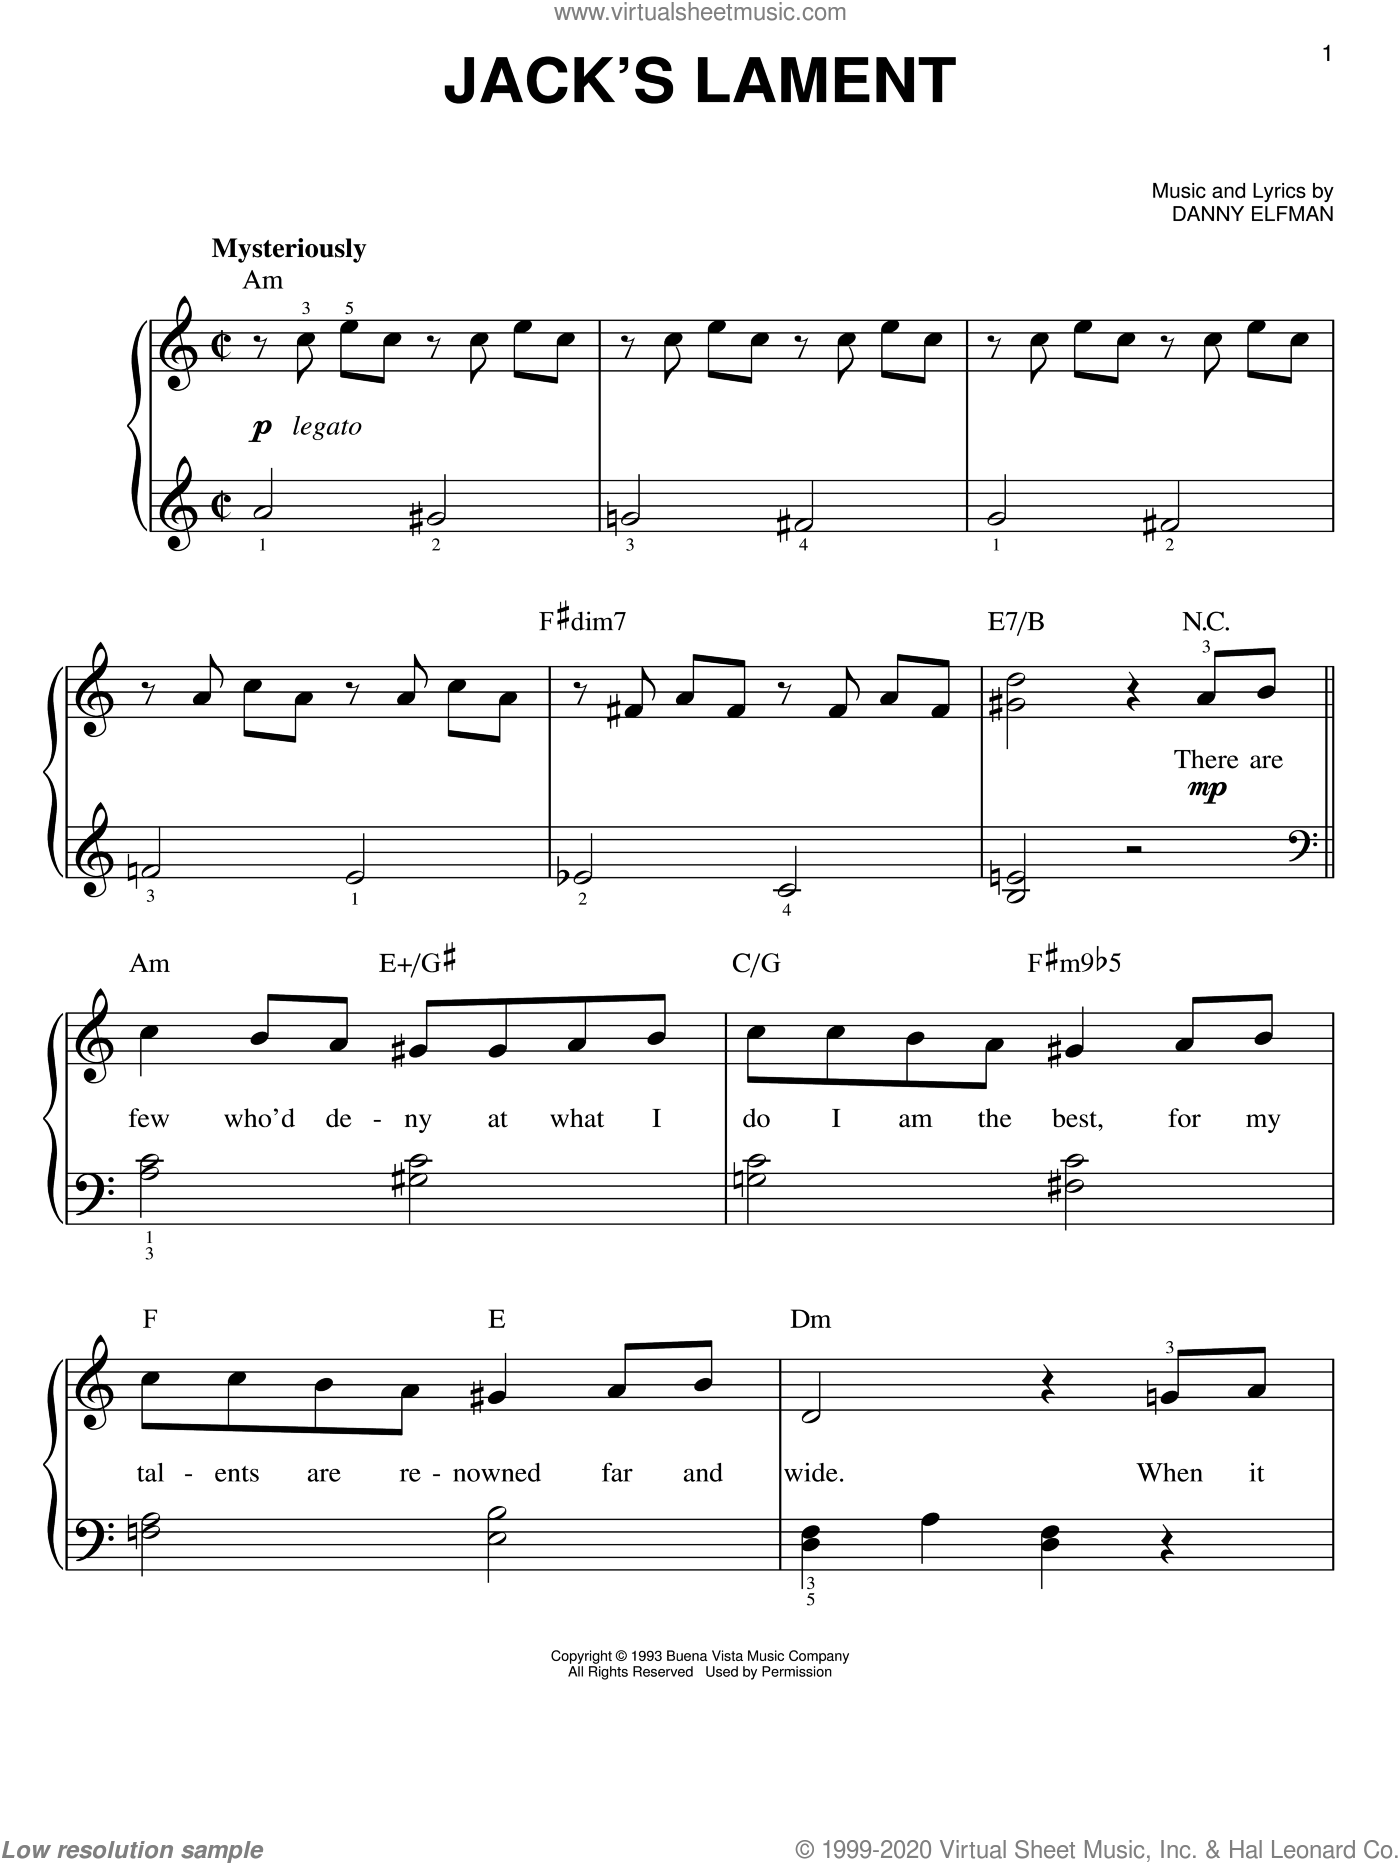 Jack's Lament (from The Nightmare Before Christmas) sheet music for piano solo by Danny Elfman and The Nightmare Before Christmas (Movie), easy skill level